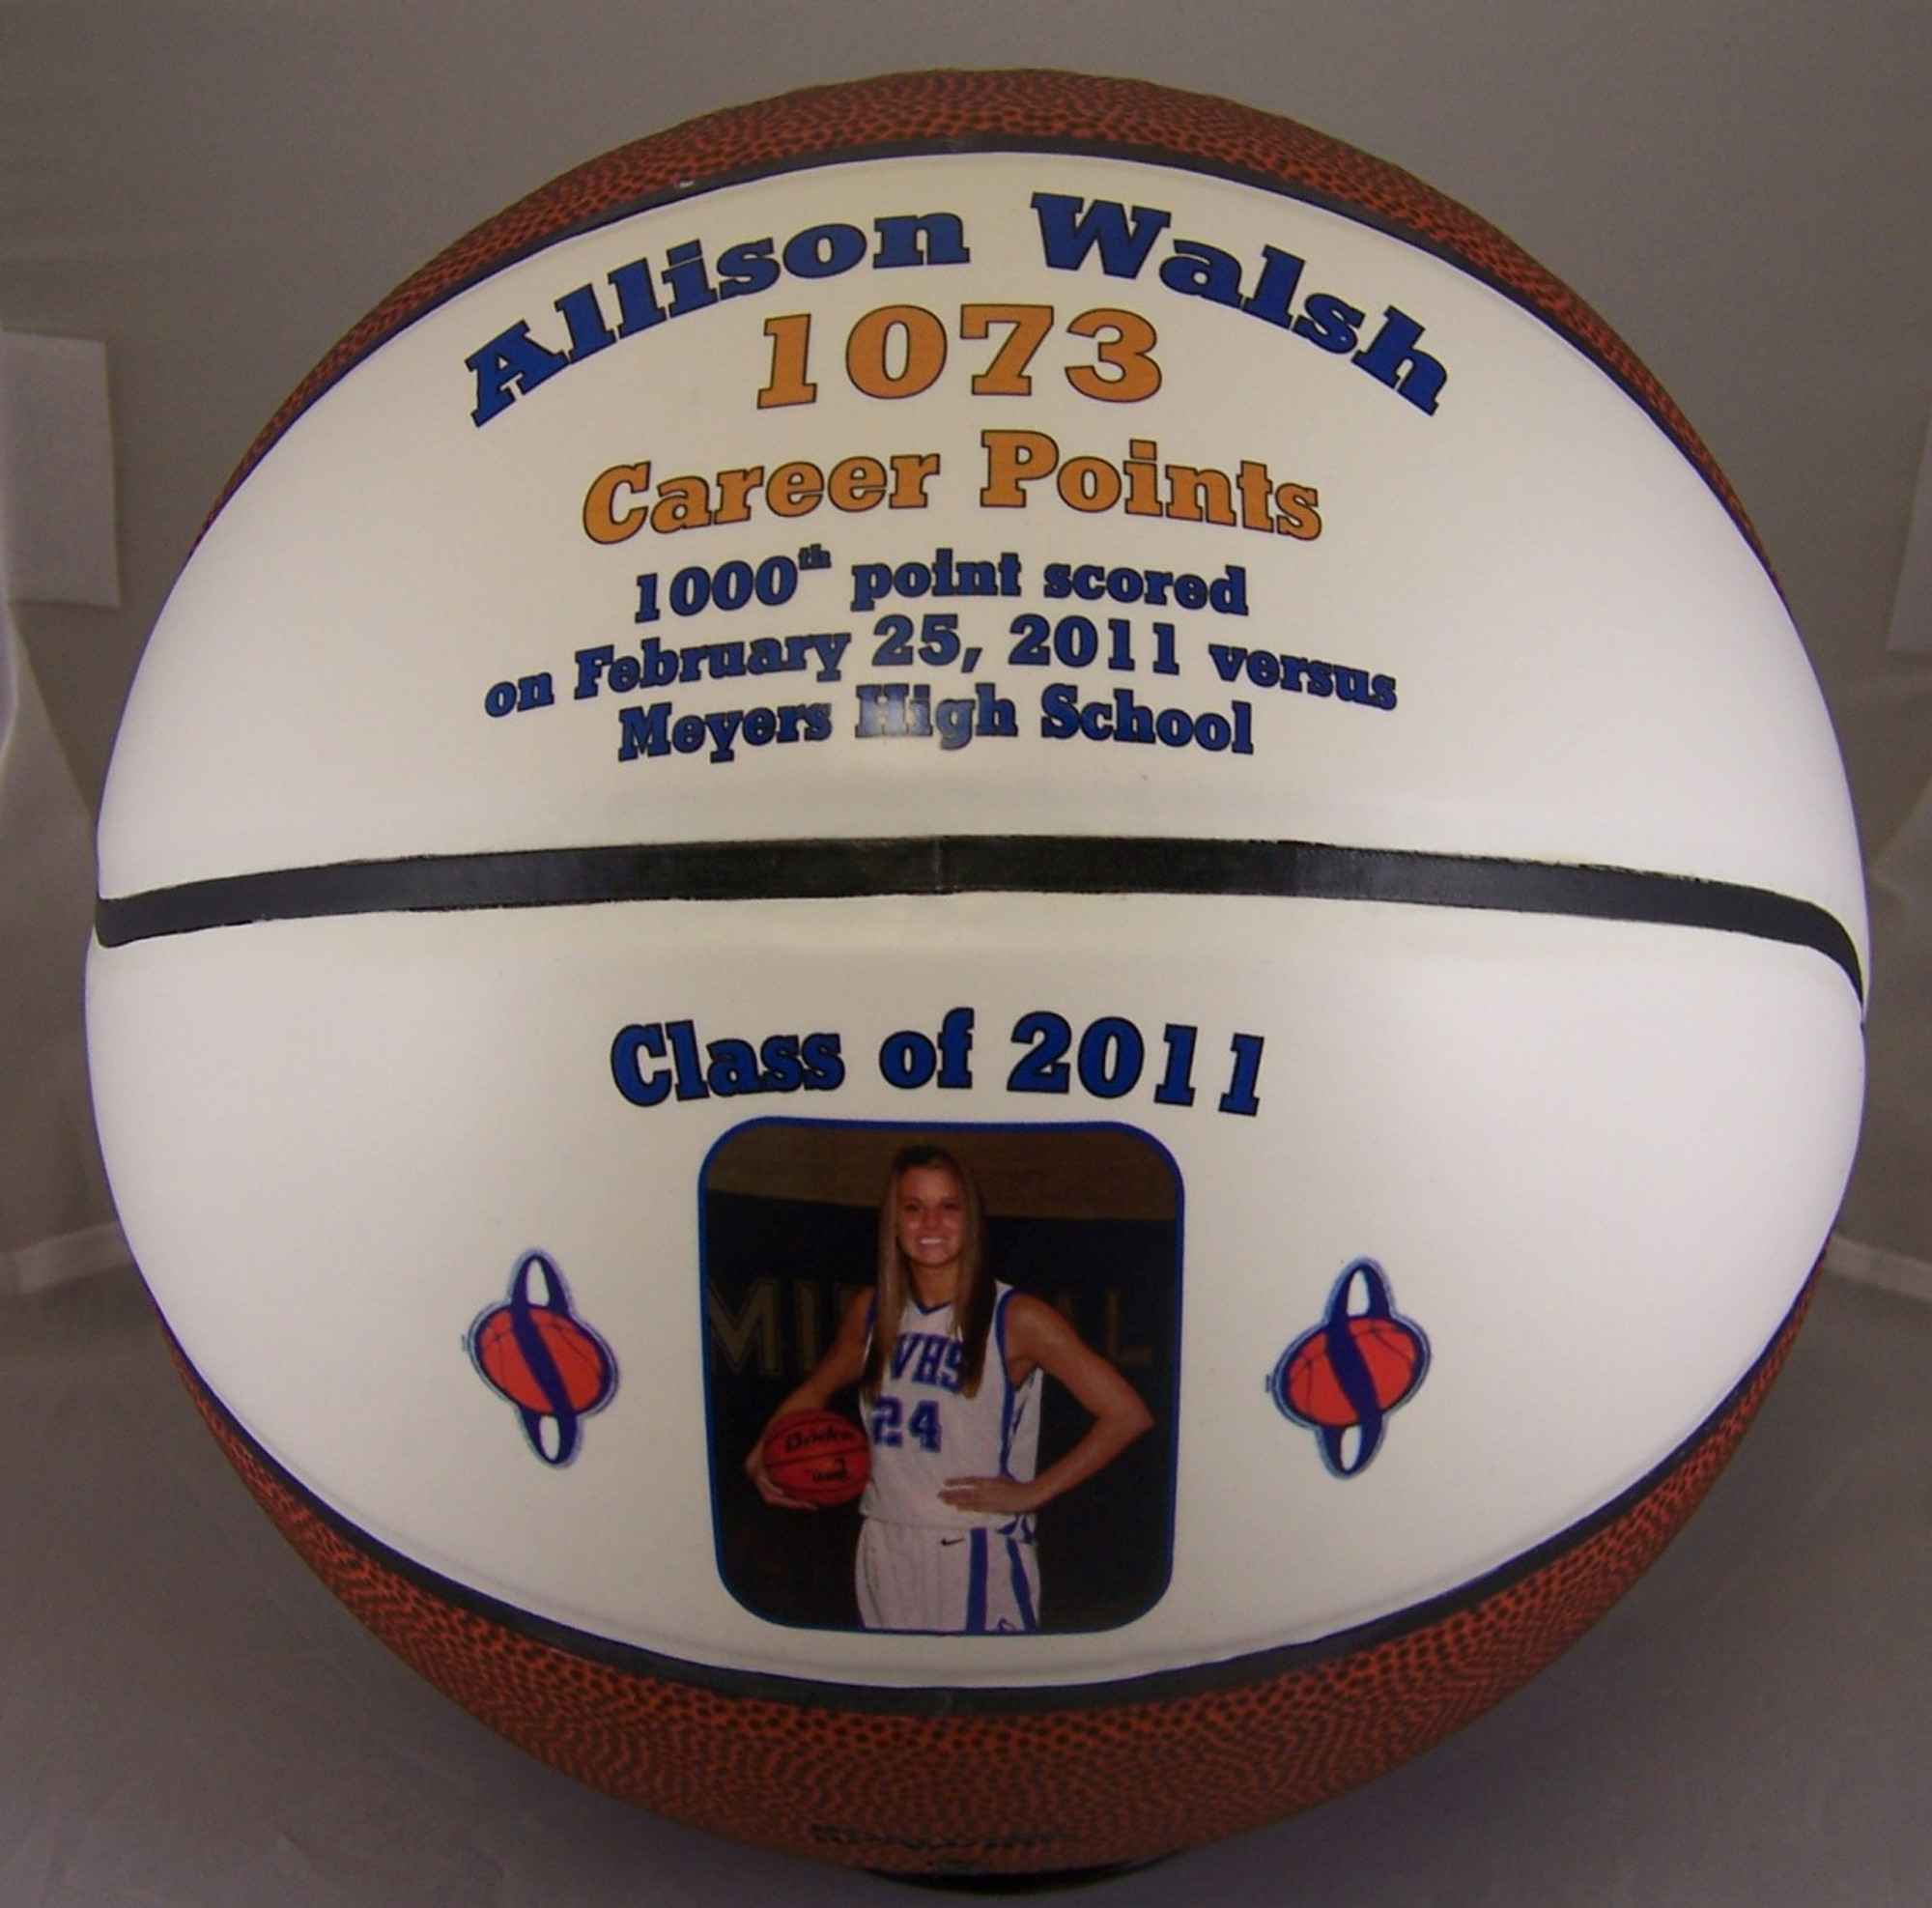 bd1801921ce Need a gift Personalized sports balls are a great gift idea for any sports  nut.